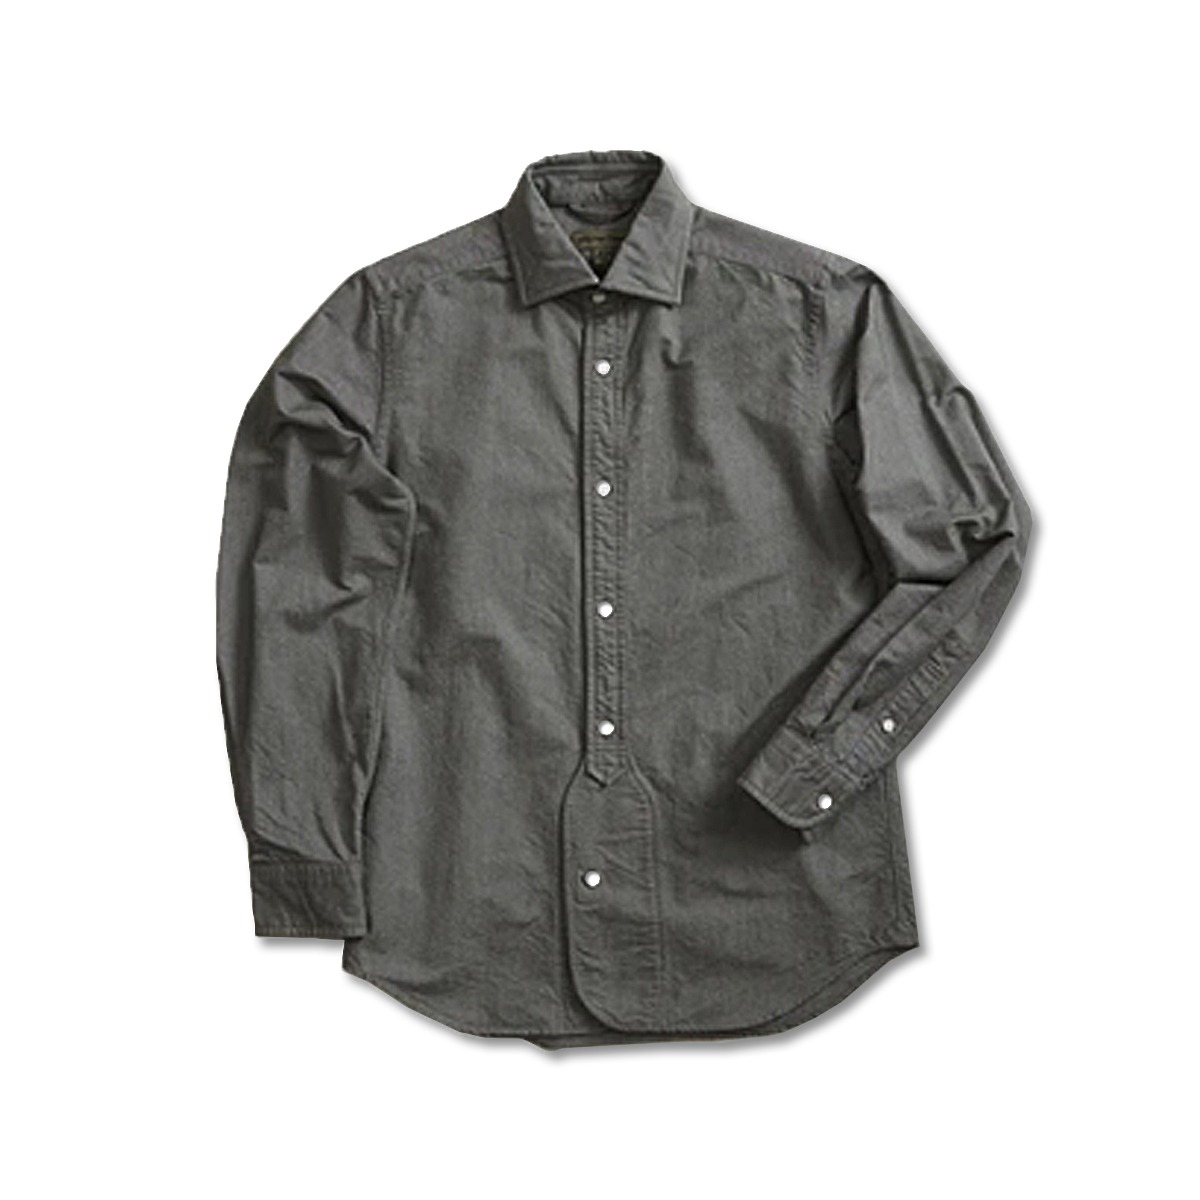 [NIGEL CABOURN] BRITISH OFFICERS SHIRT 'DARK GREEN'